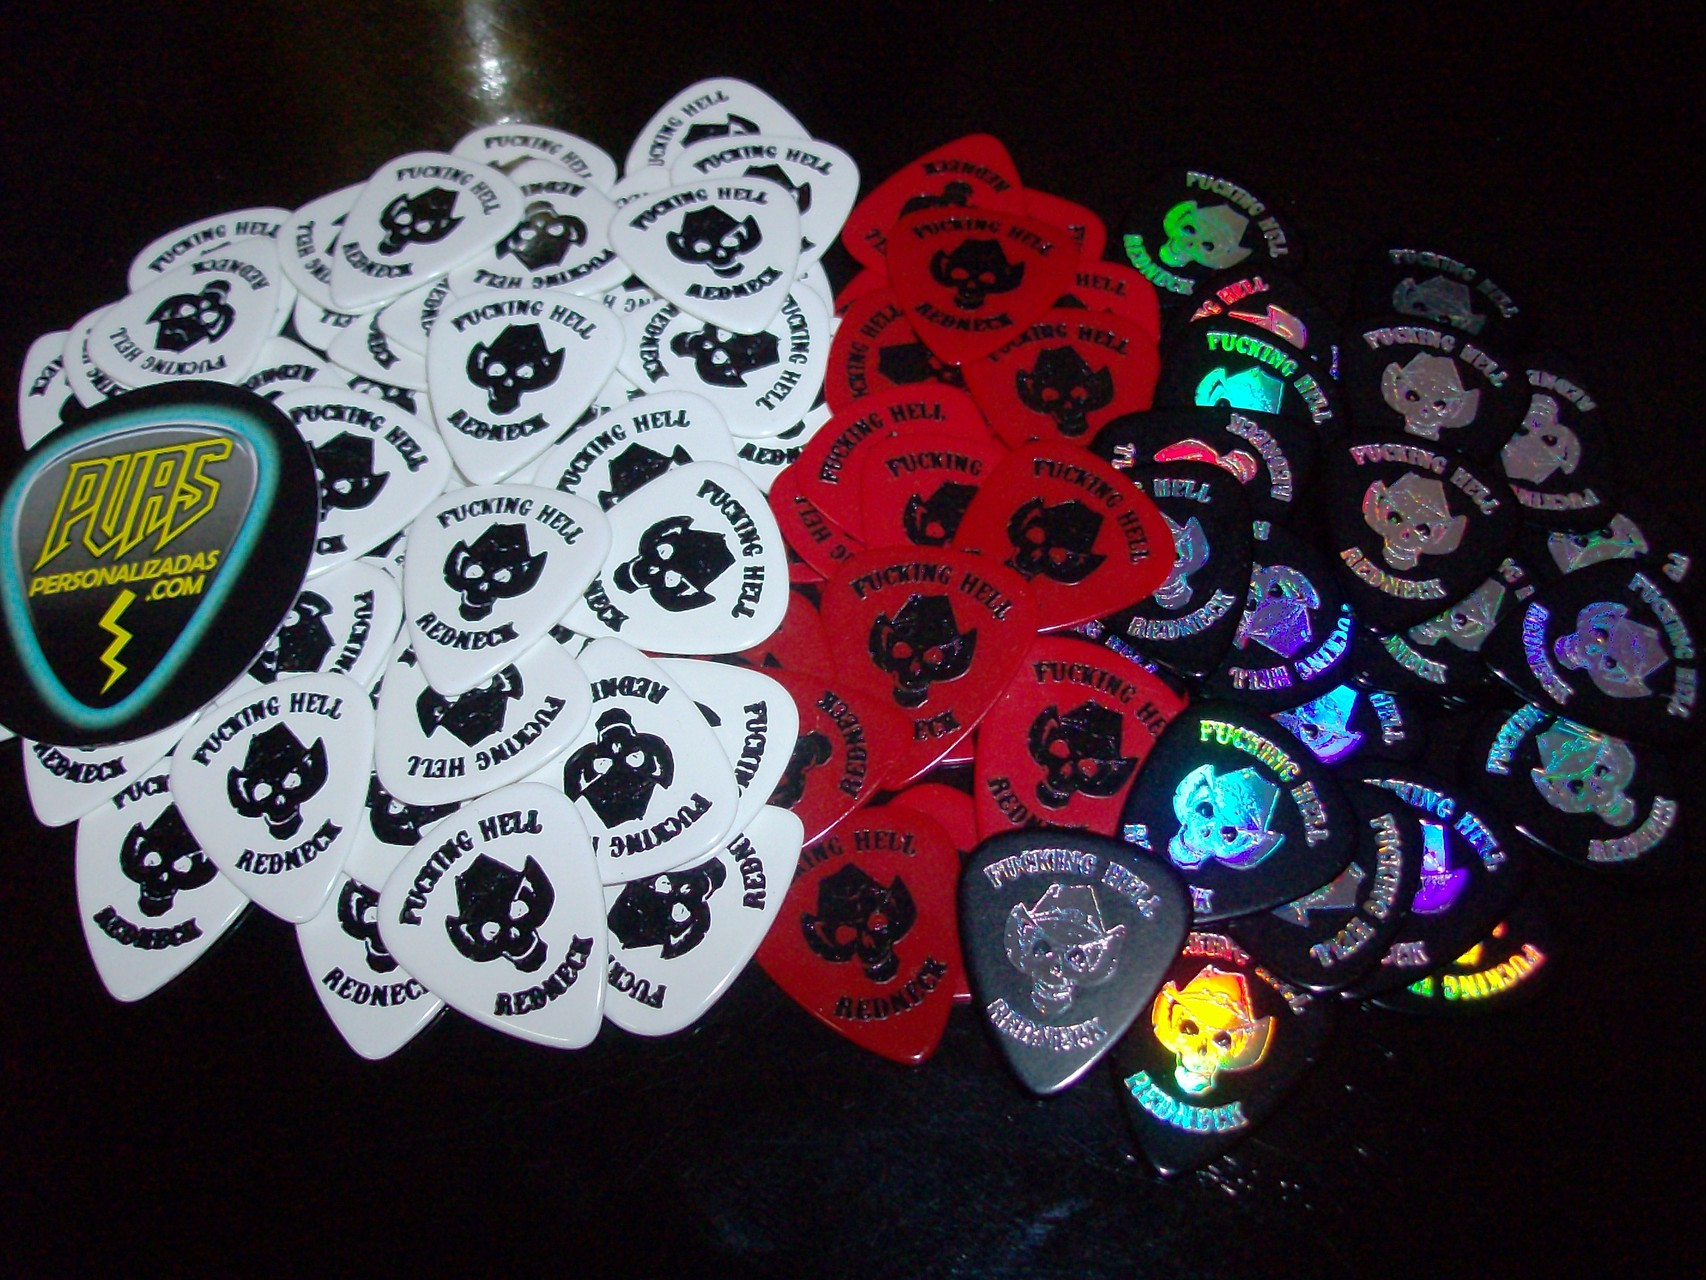 puas personalizadas, guitar picks